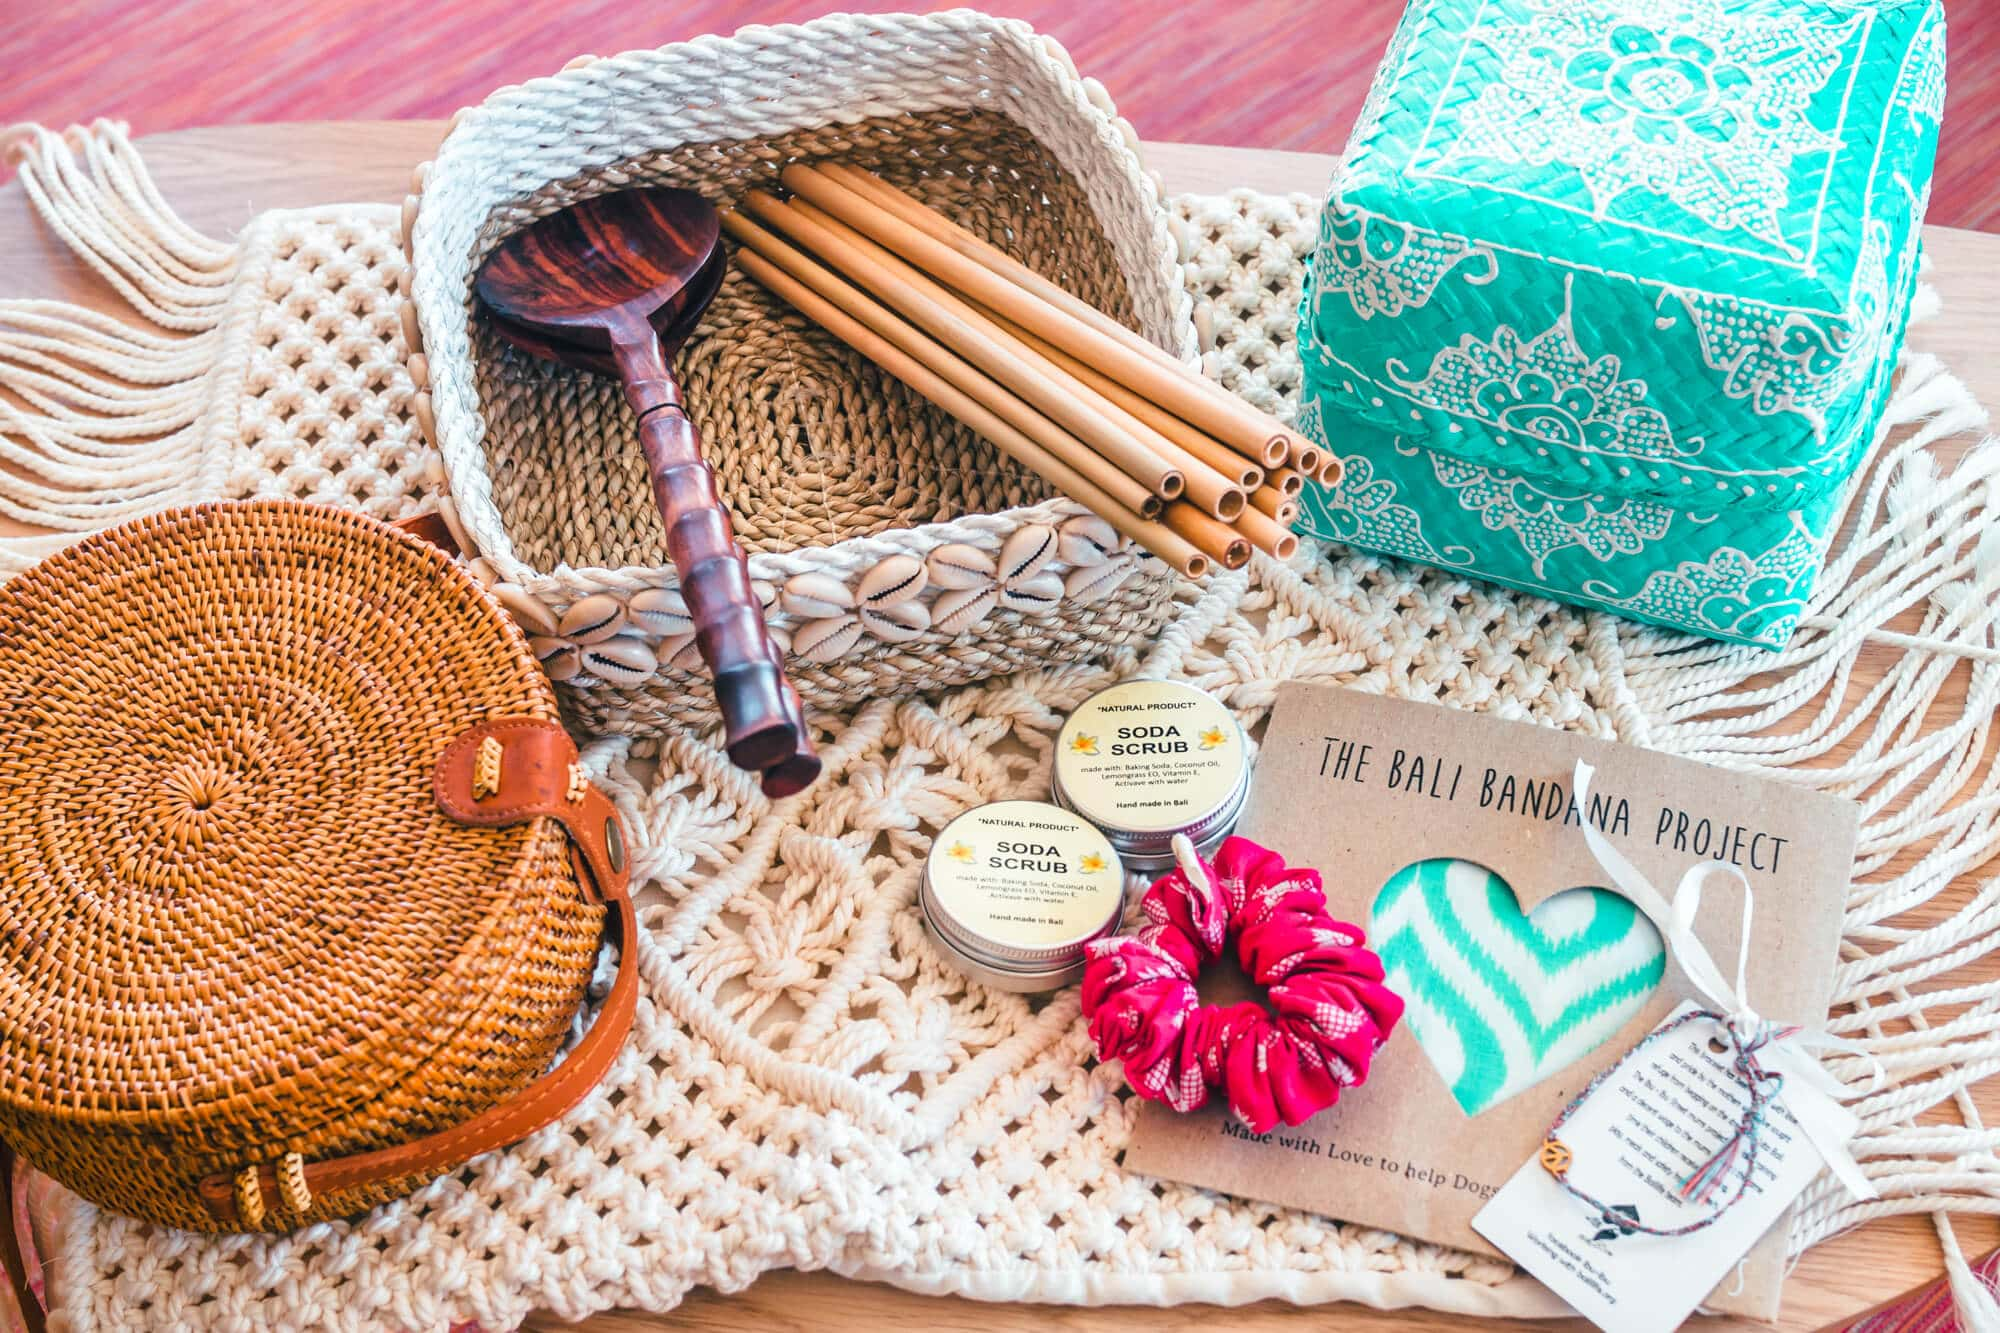 3 super cool markets in Canggu, Bali where you can buy jewelry, organic food, natural skin care, vintage clothing and other beautiful handicrafts